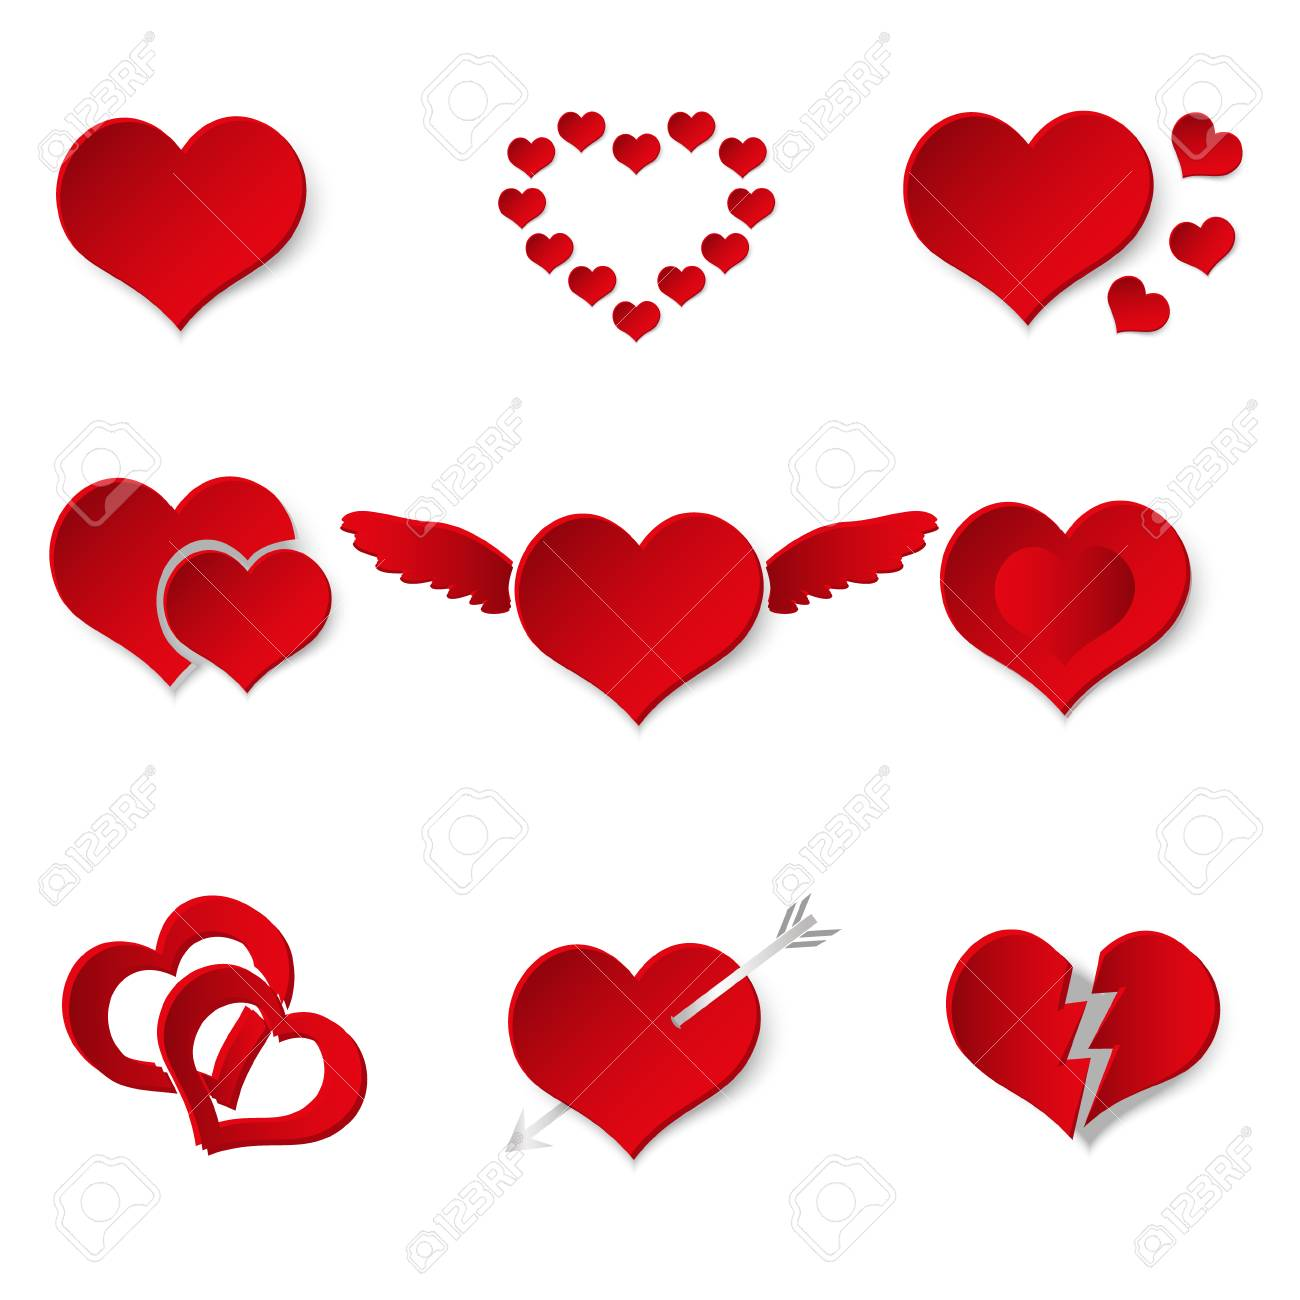 Set of red paper style valentine hearth love symbols eps10 royalty set of red paper style valentine hearth love symbols eps10 stock vector 73172358 biocorpaavc